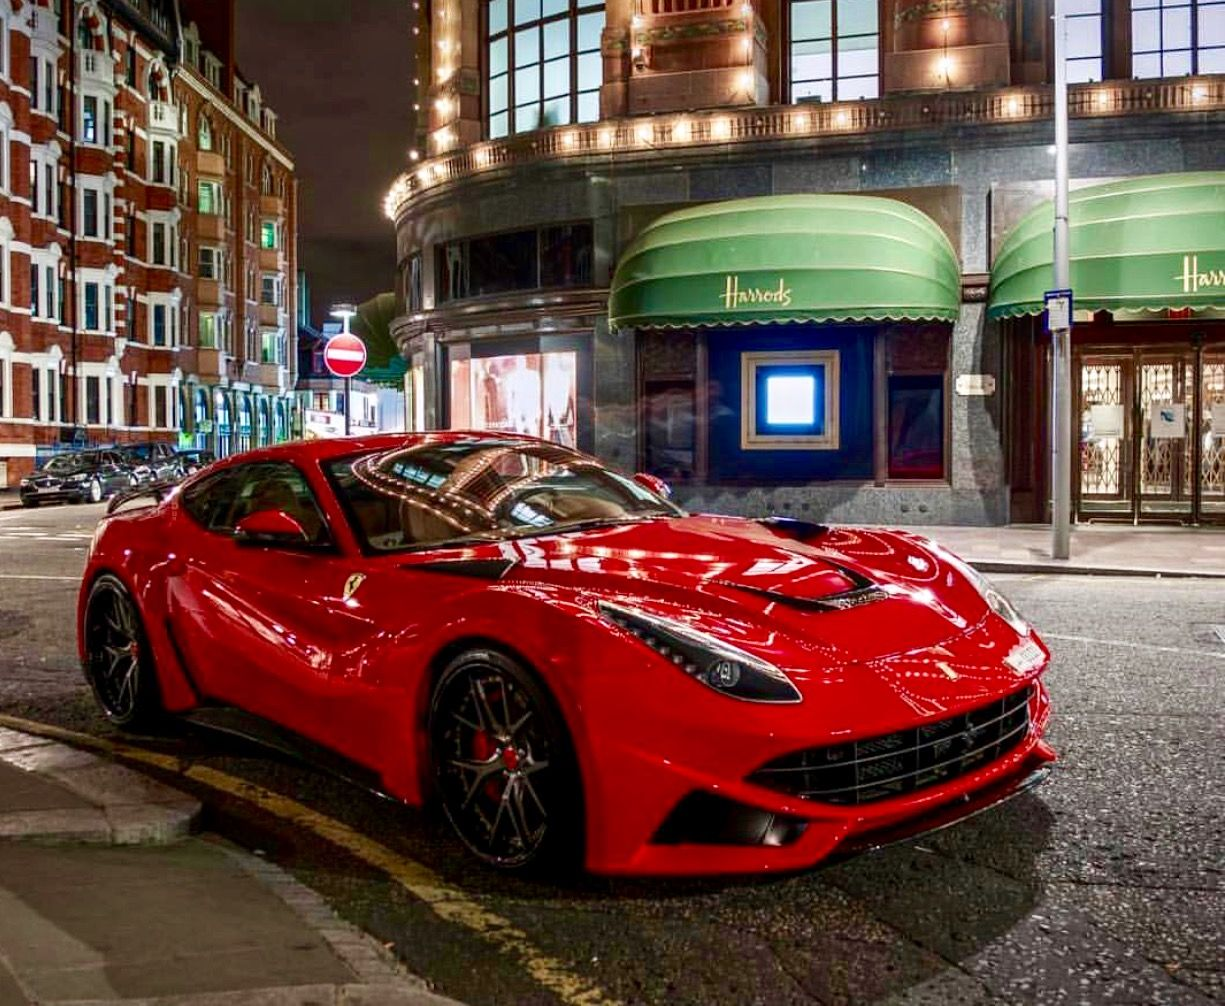 Pin by Rhonda Carder on Exotic Supercars, Luxury Cars, Muscle cars